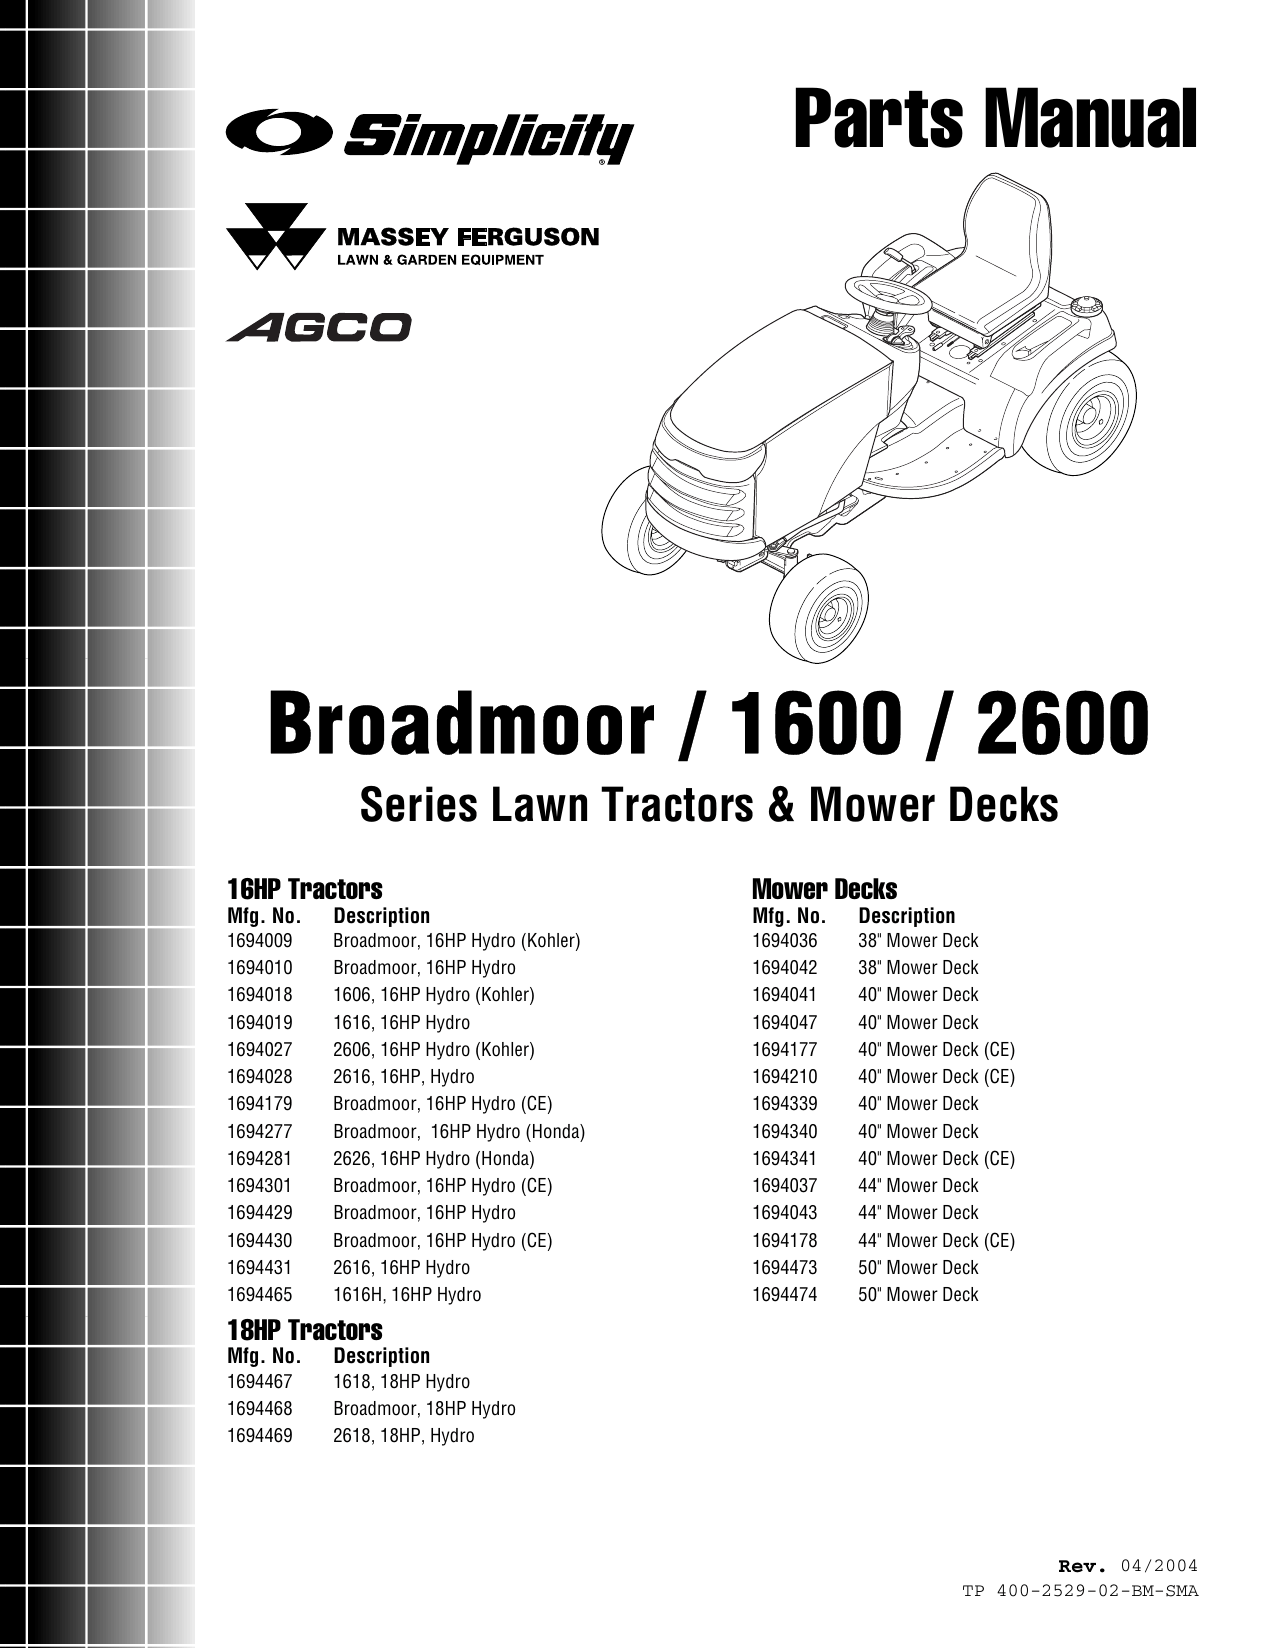 Snapper Broadmoor 2600 Users Manual PartsManual